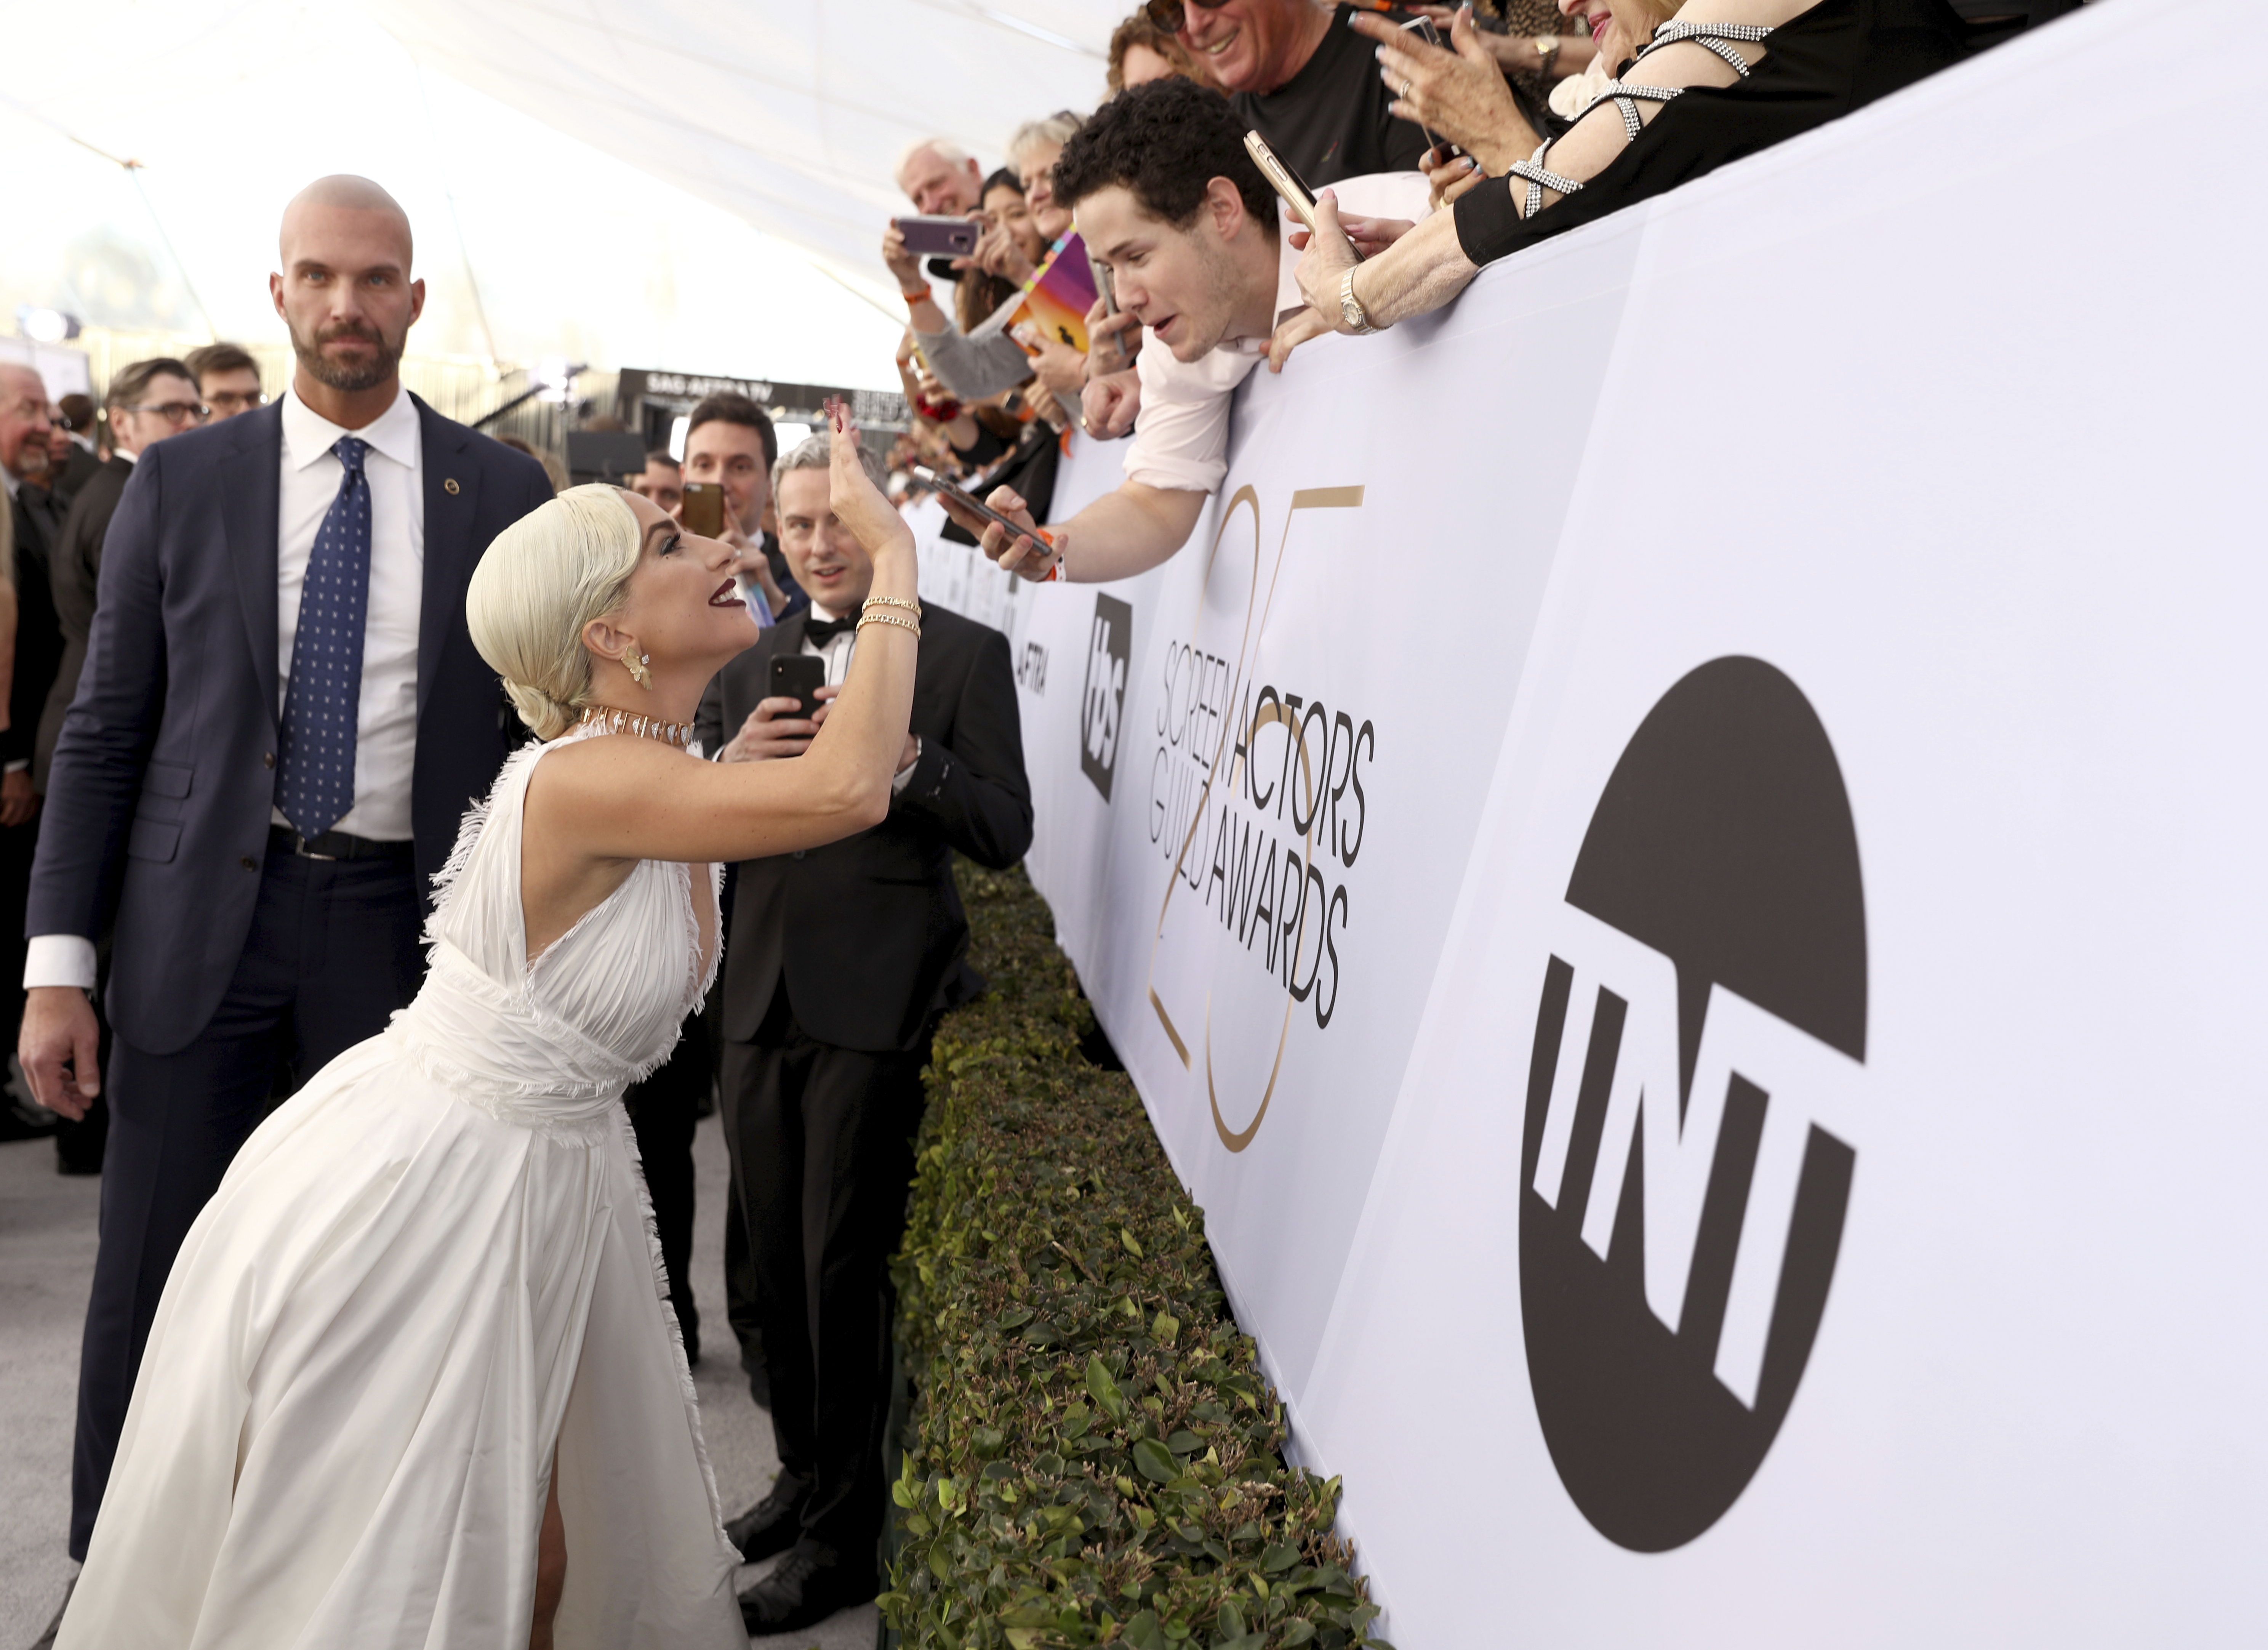 Lady Gaga interacts with fans at the 25th annual Screen Actors Guild Awards at the Shrine Auditorium & Expo Hall on Sunday, Jan. 27, 2019, in Los Angeles. (Photo by Matt Sayles/Invision/AP)